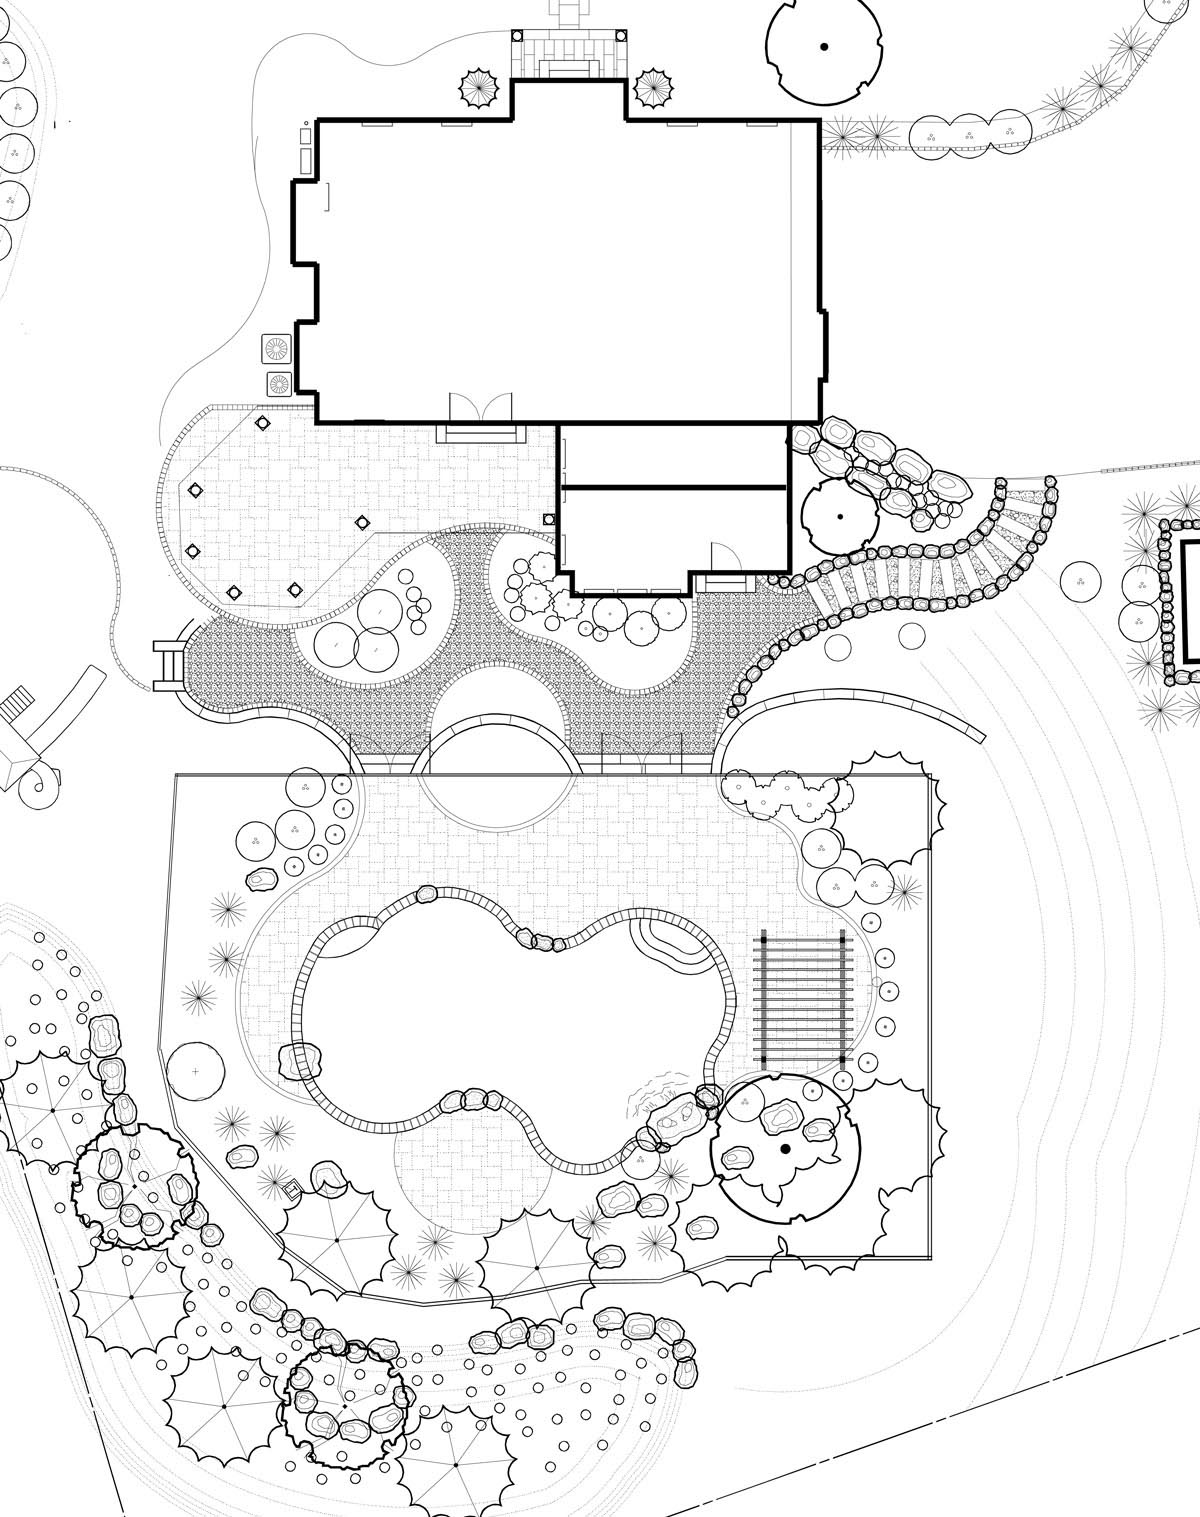 Kwilcox-landscaping-PLAN-EXAMPLE-3